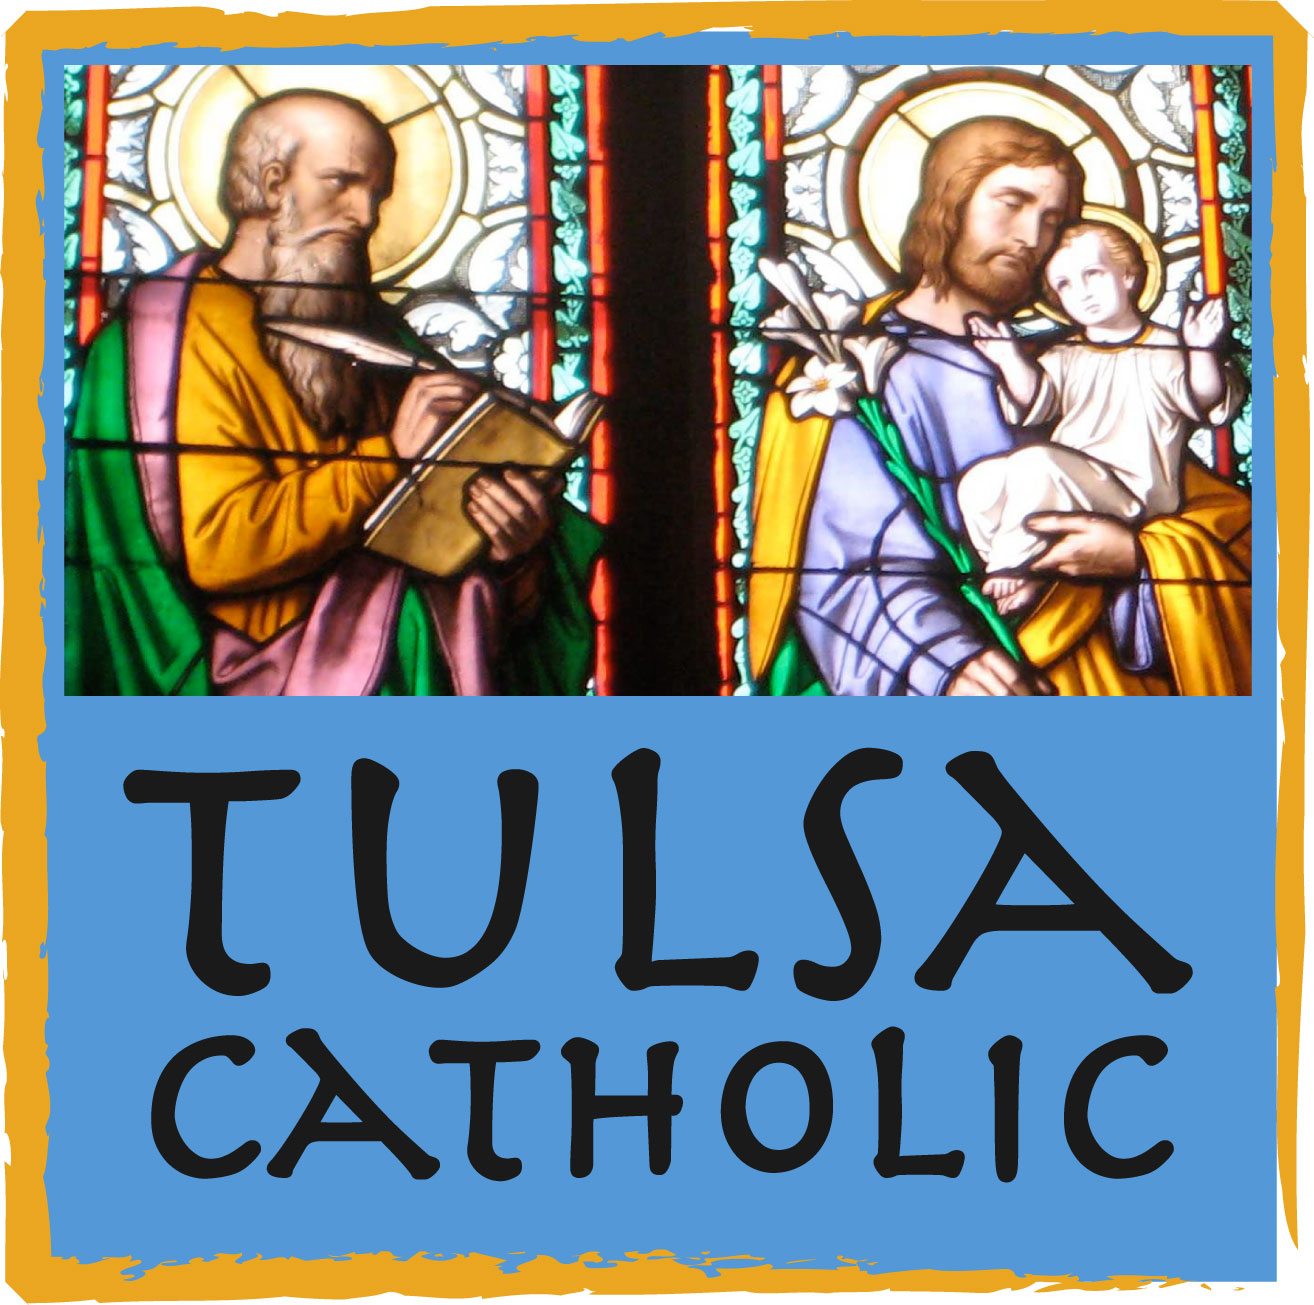 http://tulsacatholic.everythingesteban.com/wp-content/uploads/2012/09/TC-logo.jpg